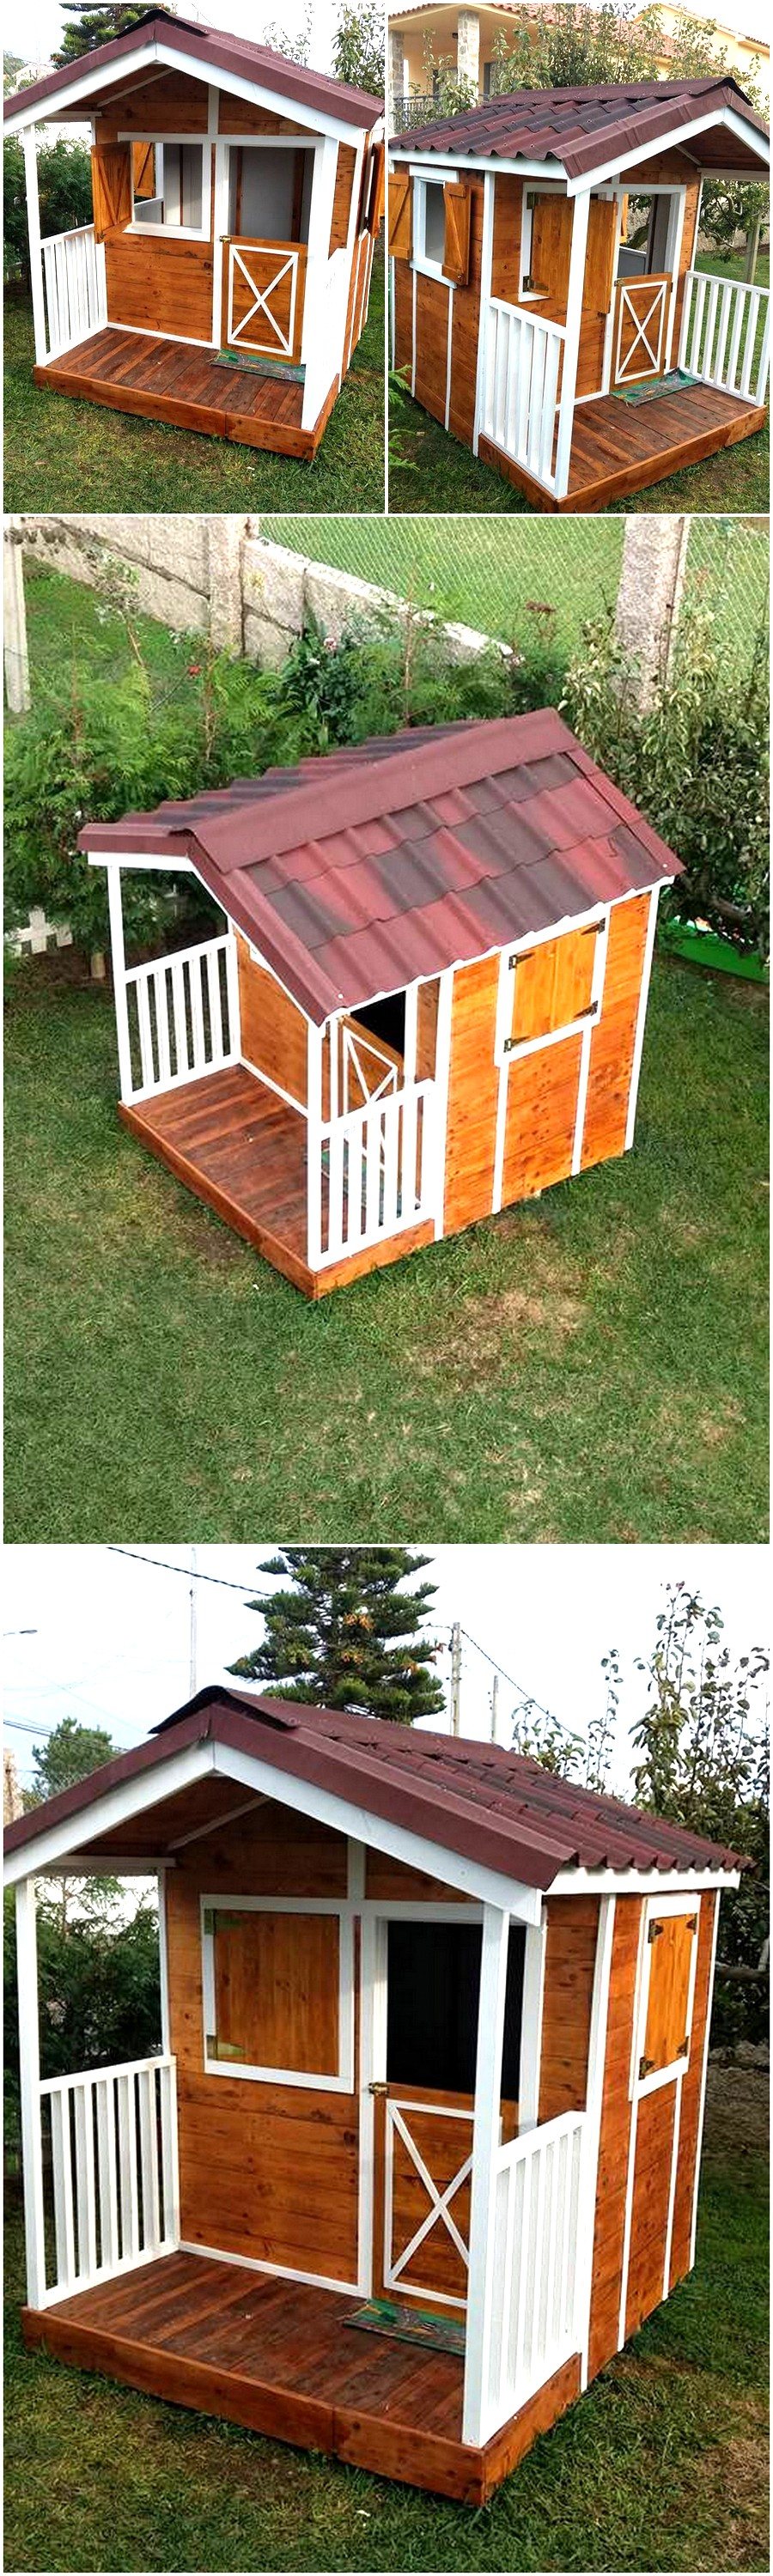 recycled-pallet-garden-cottage